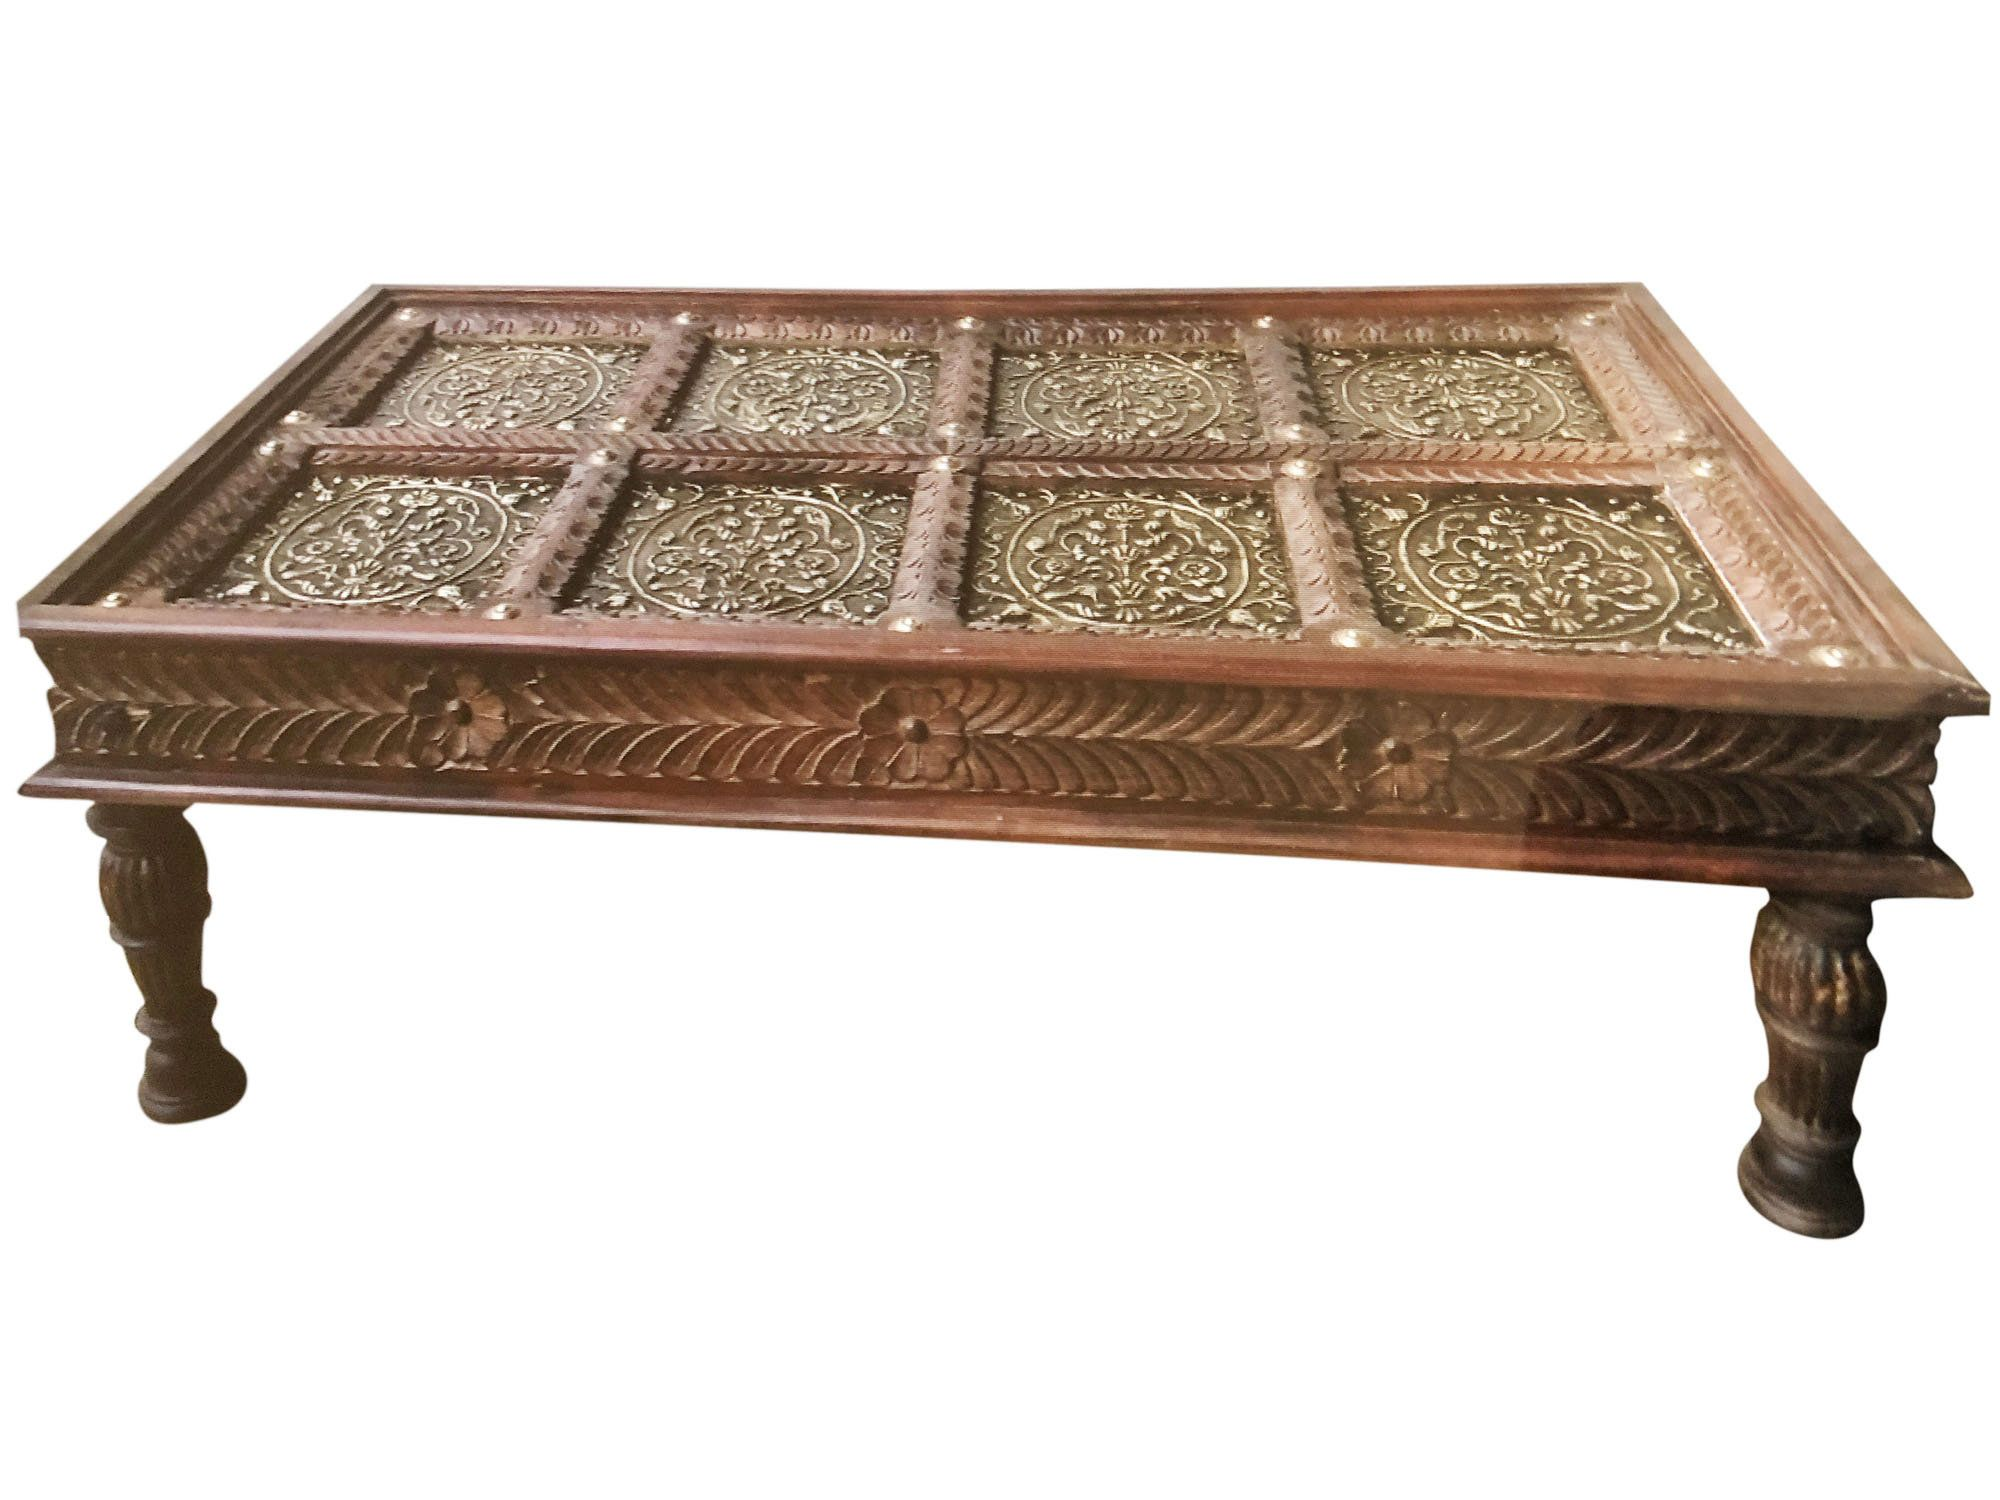 Chai Table Antique Indian Door Coffee Table Ornate Brass Carved